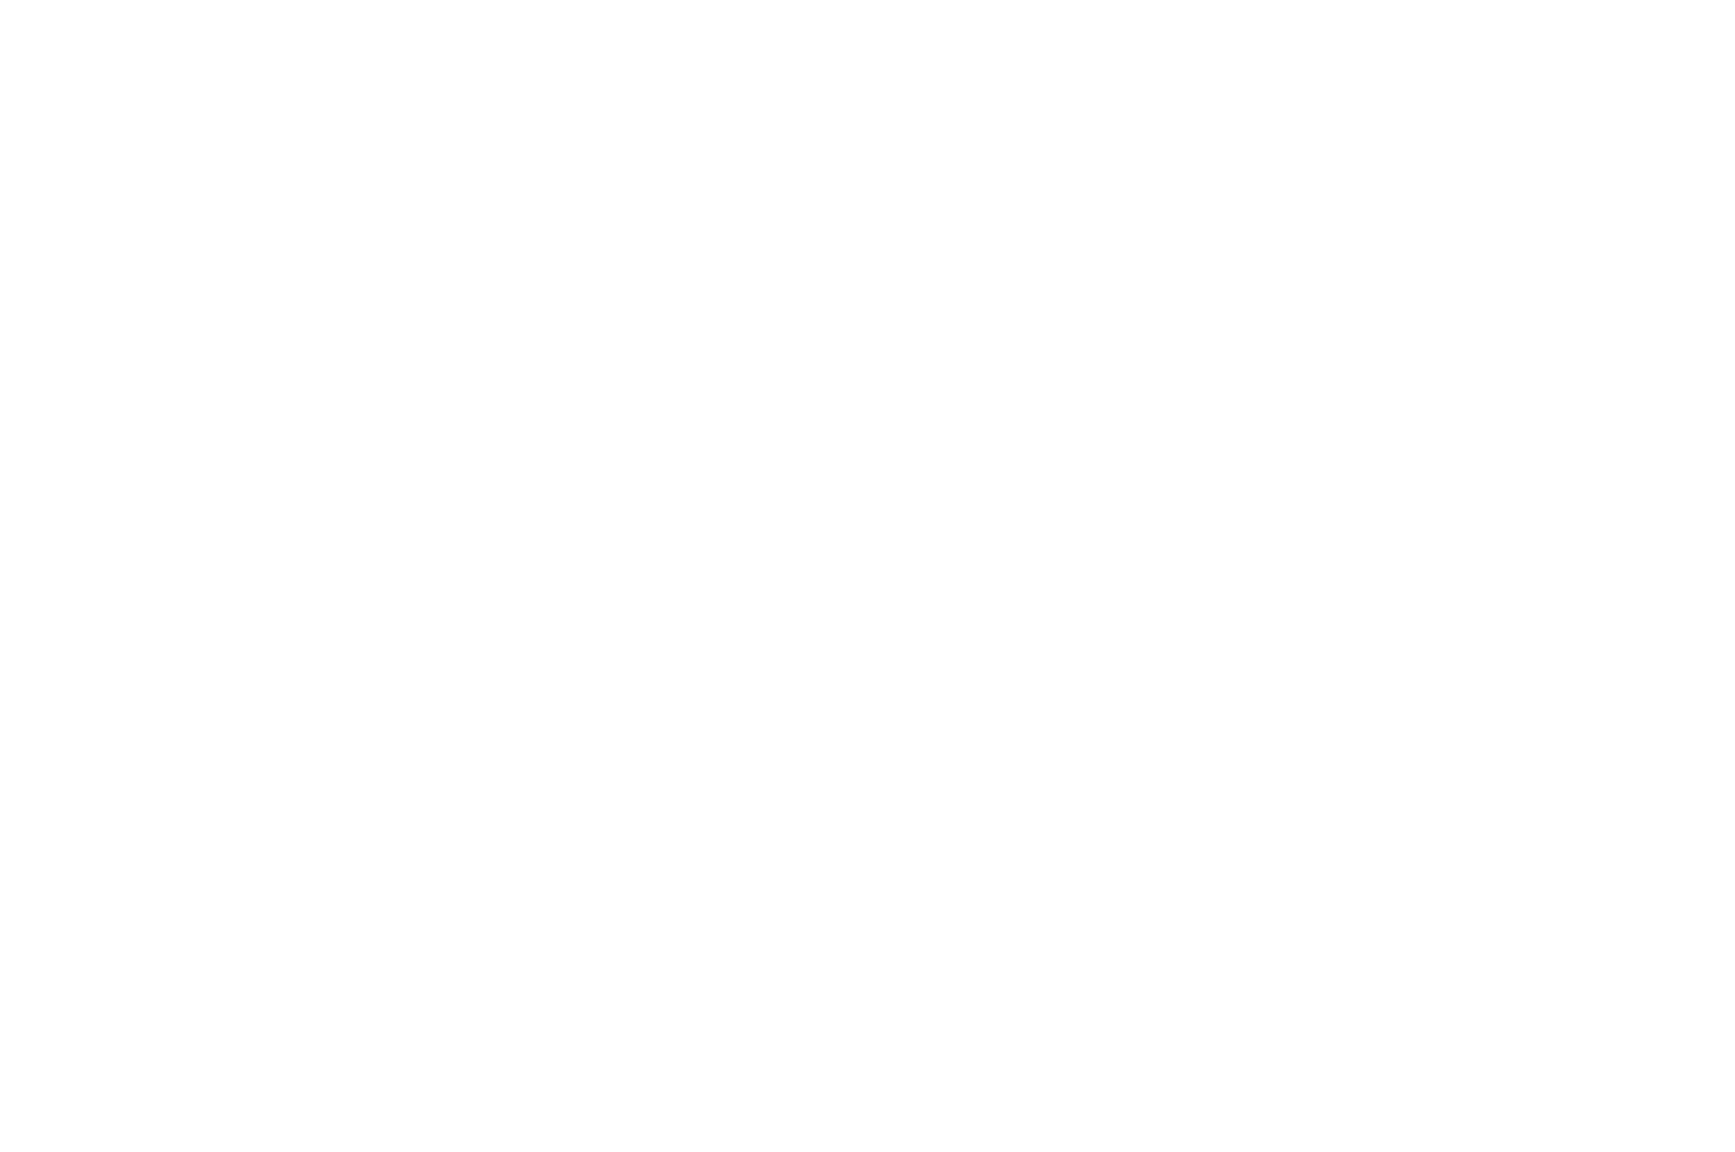 OFFICIAL SELECTION - New York Film Awards 2017 - Worth It.png